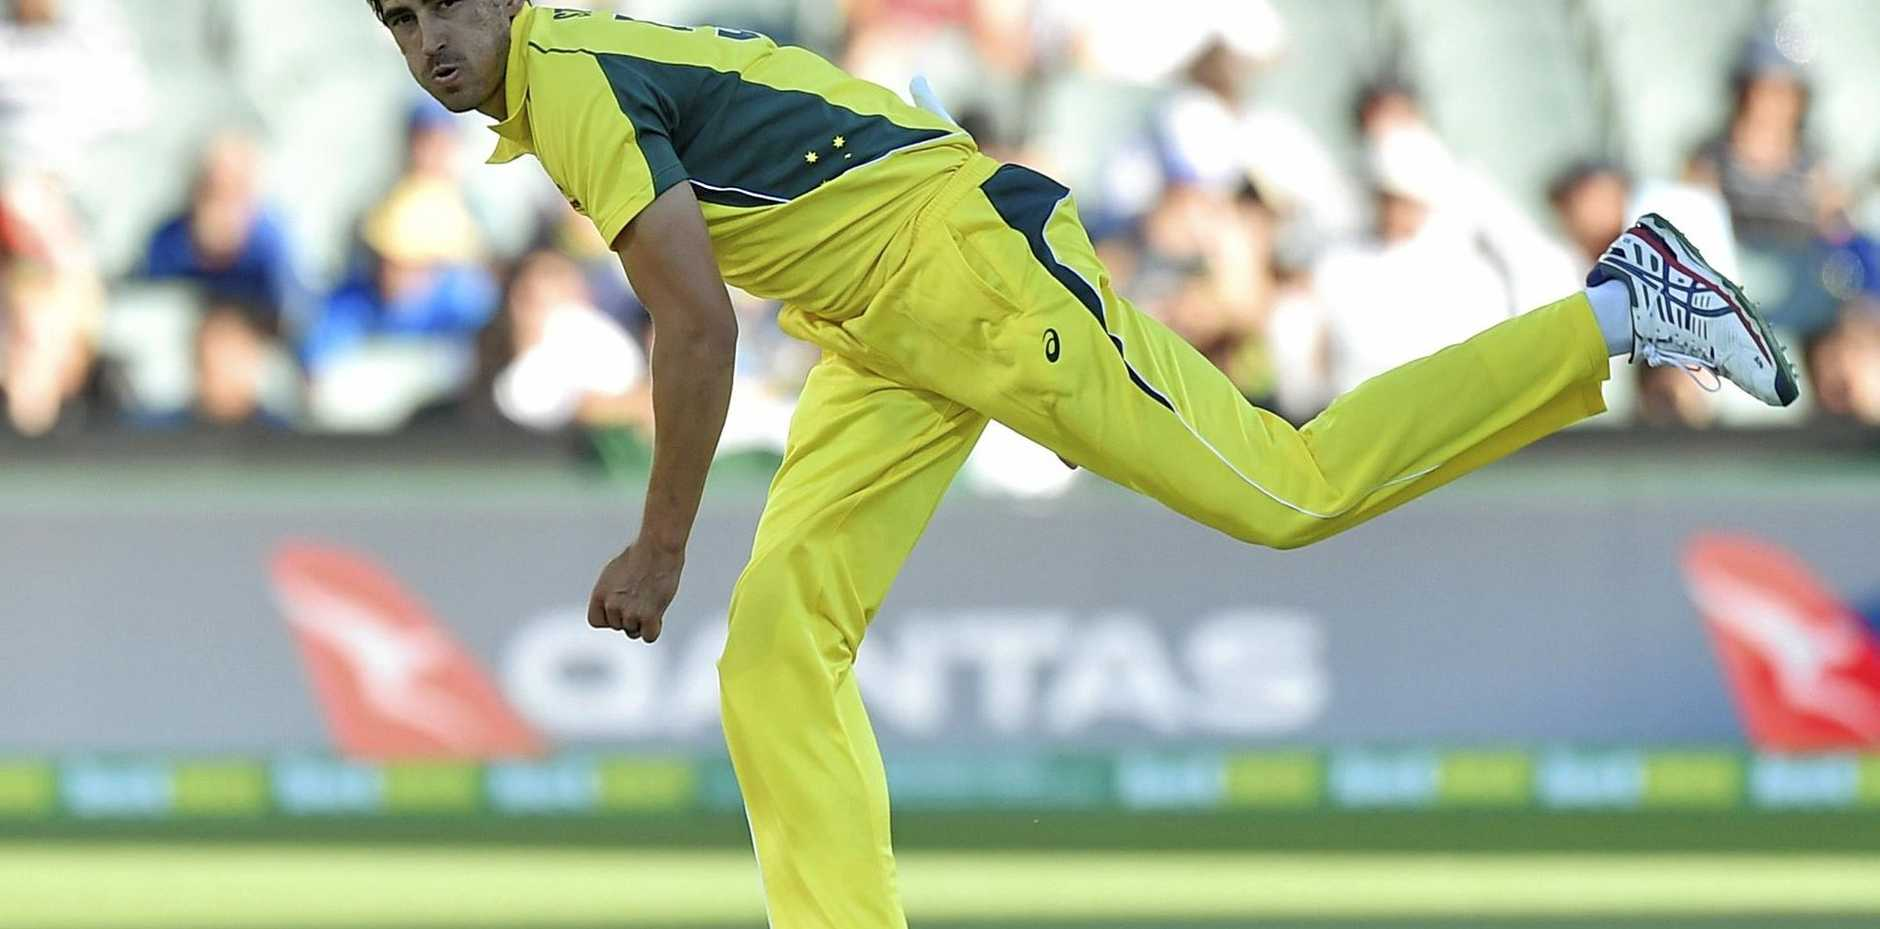 Mitchell Starc of Australia bowls against Pakistan earlier this year.